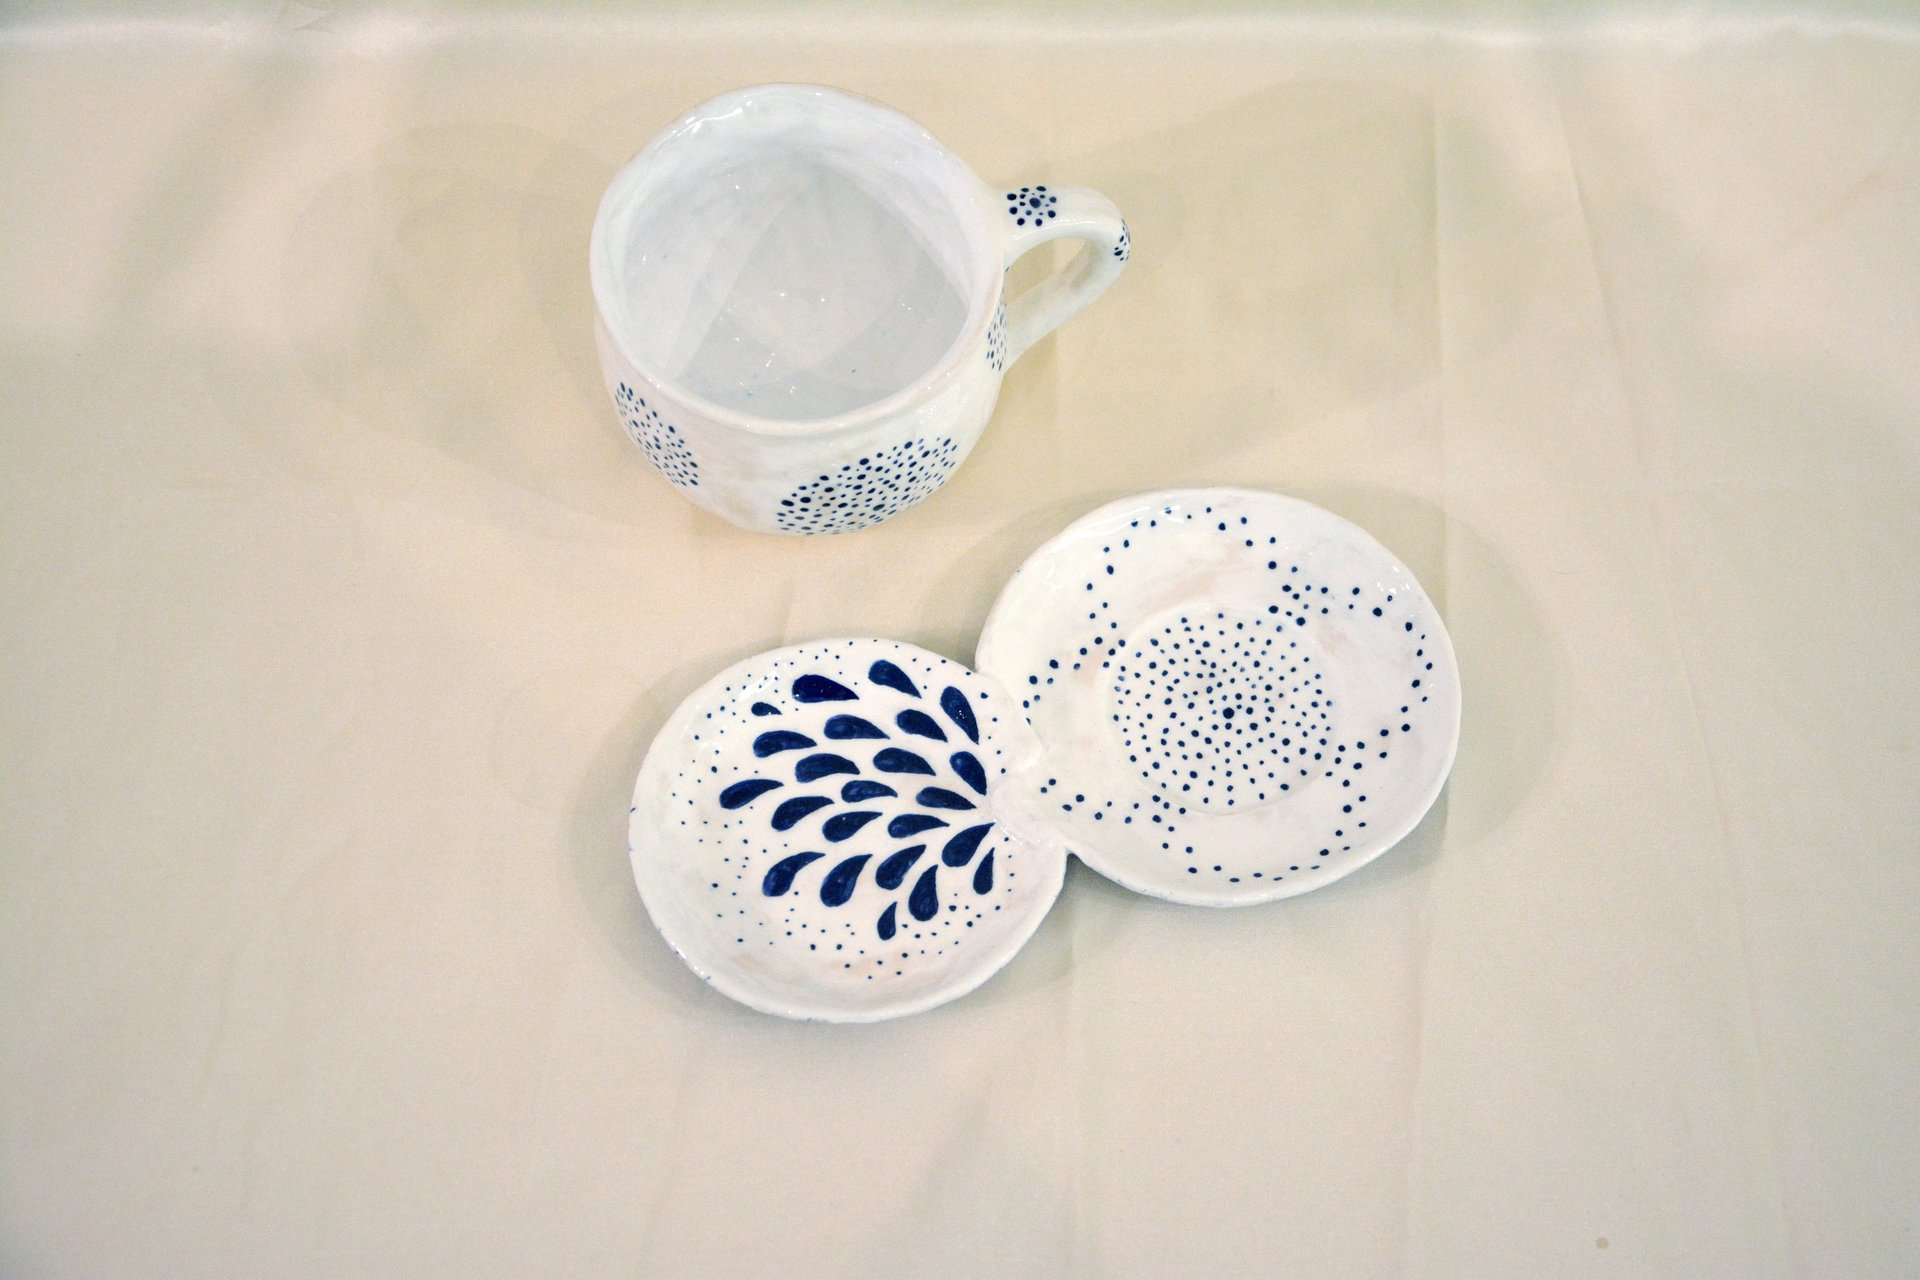 A pair of white cups with a blue Dot-Circle pattern - Cups, glasses, mugs, 300 ml and 200 ml, photo 2 of 4.